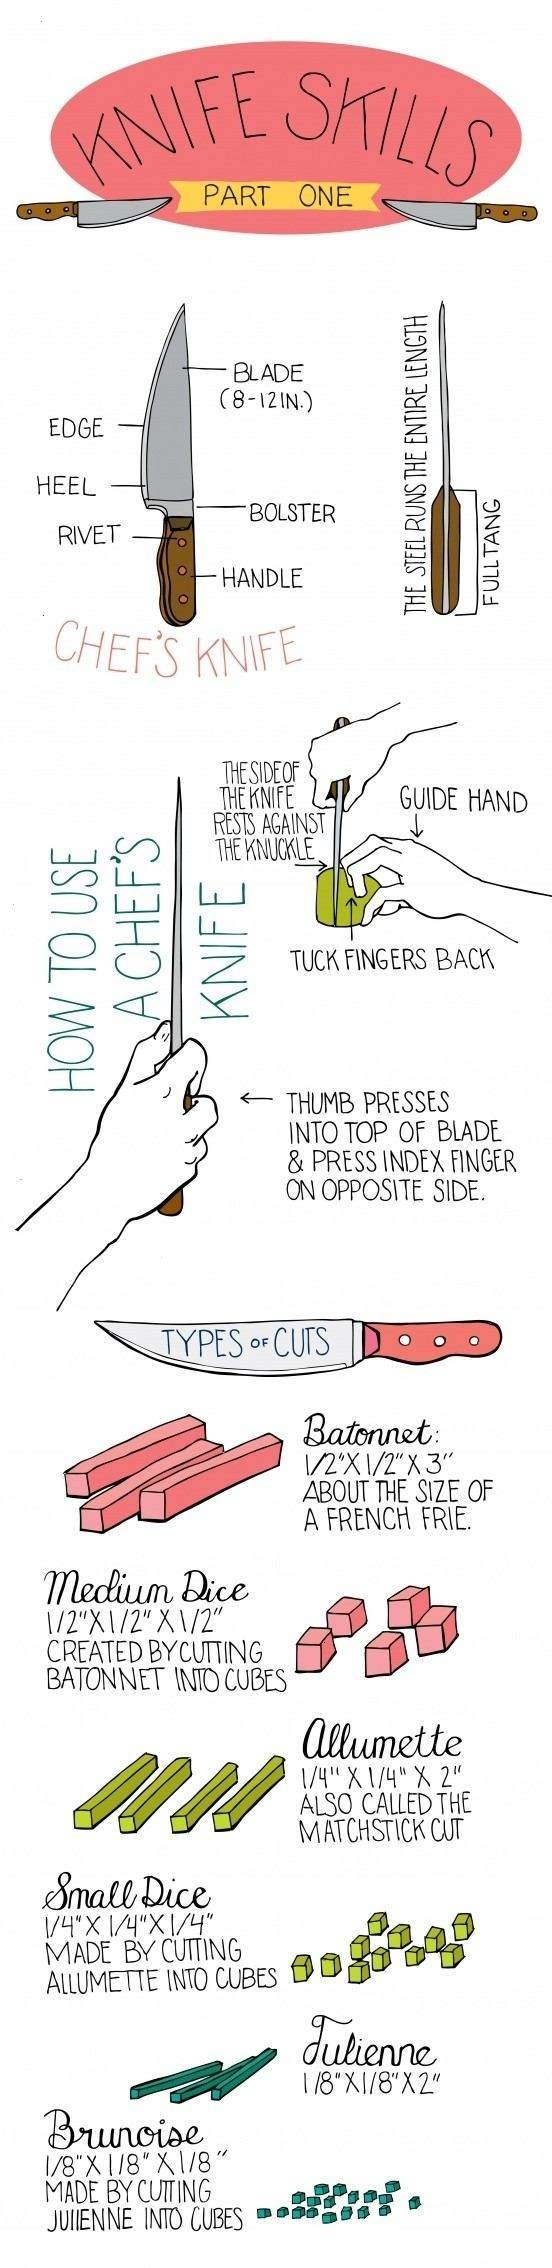 knife skills 1: Knifes Skills, Chef Knives, Kitchens Cheat Sheet, Chef Knifes, Kitchens Tips, Cooking, Hair Color Ideas, Food Recipe, Culinary Art